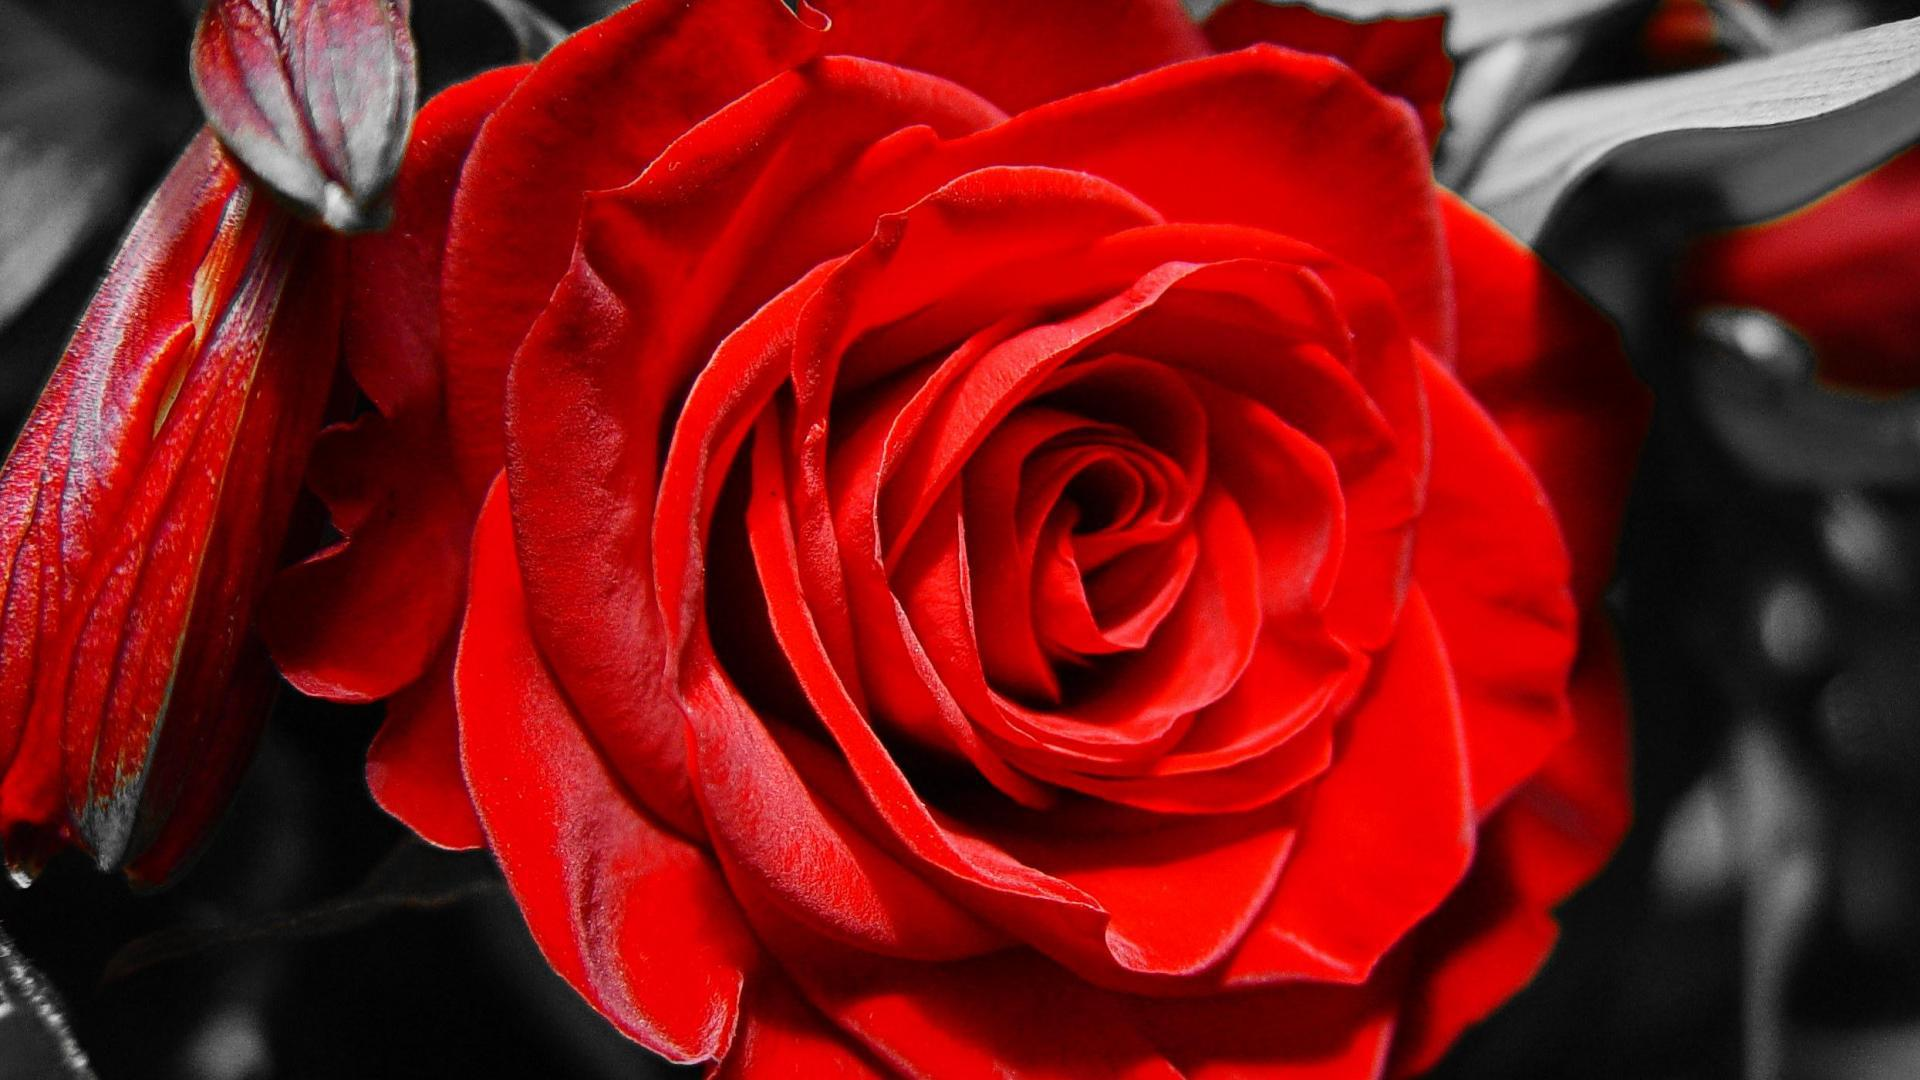 Red rose on black and white background on March 8 wallpapers and 1920x1080